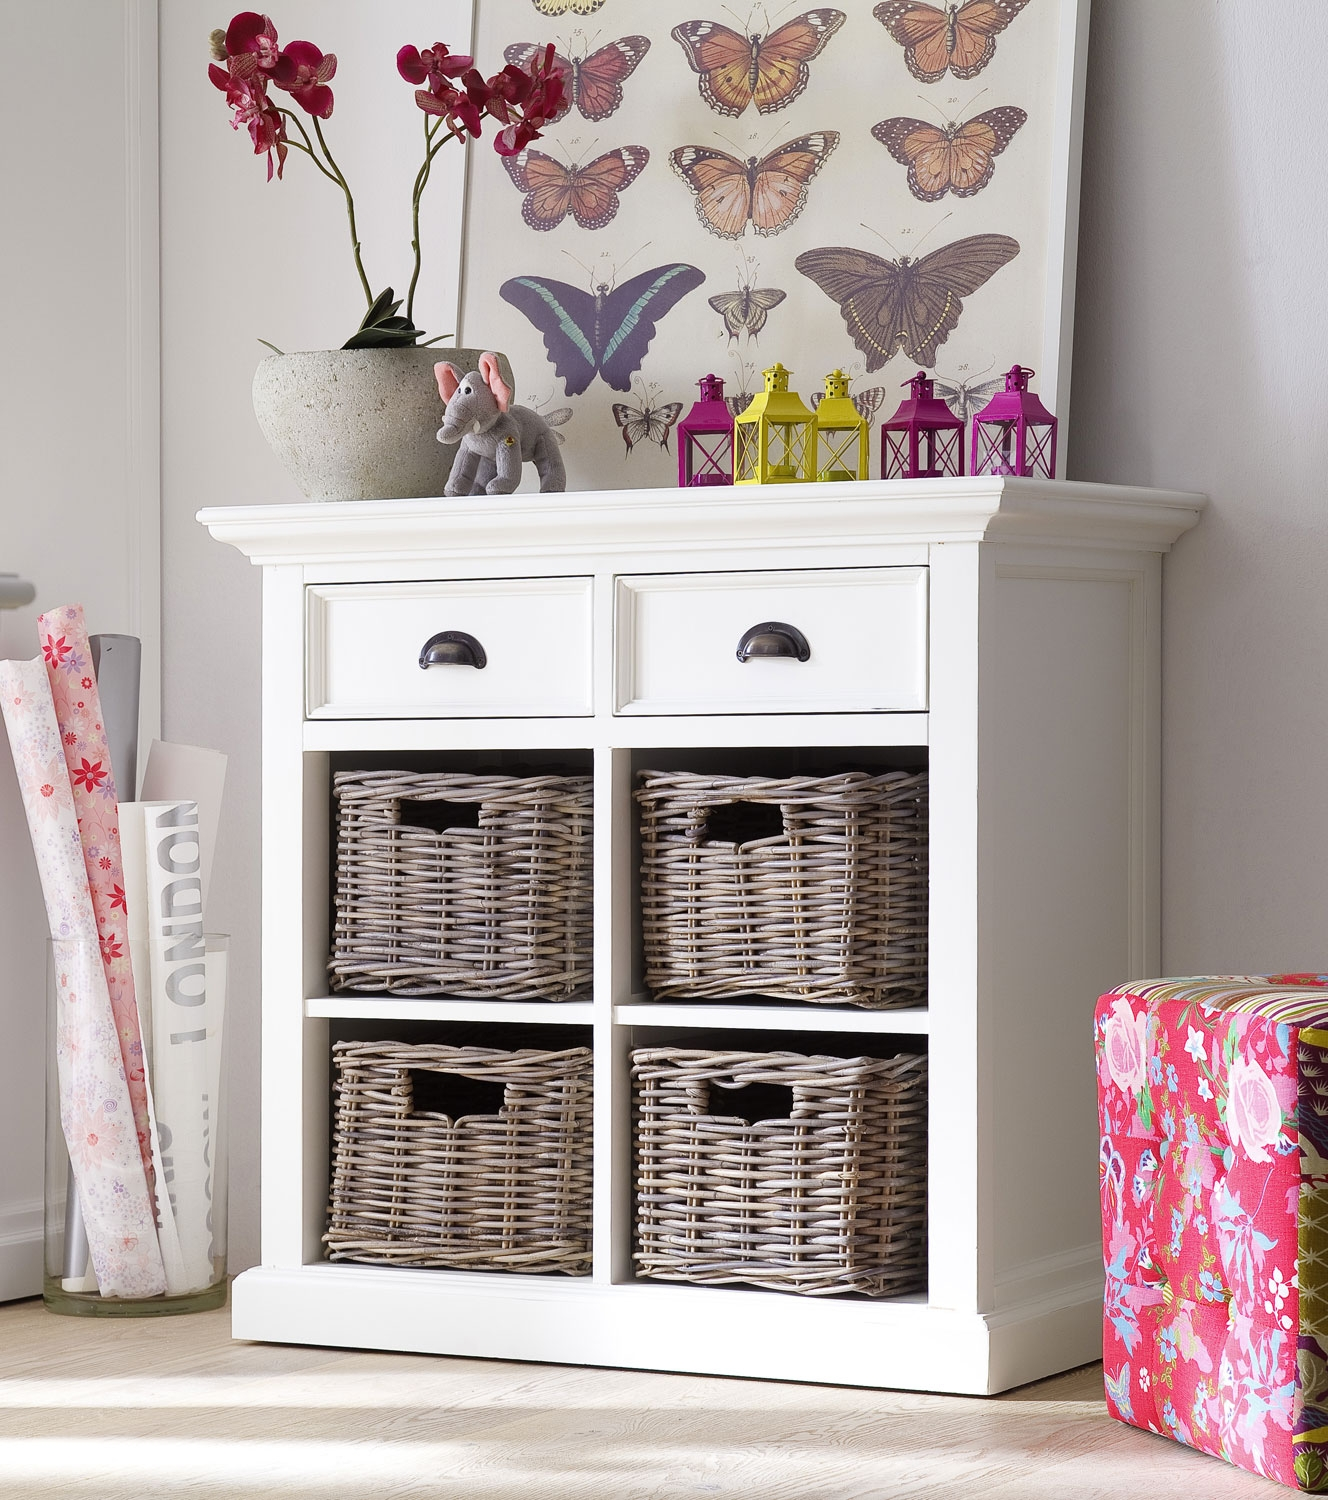 Our Dining Room Furniture Range Whitehaven Painted Small Buffet With 4 Rattan Baskets